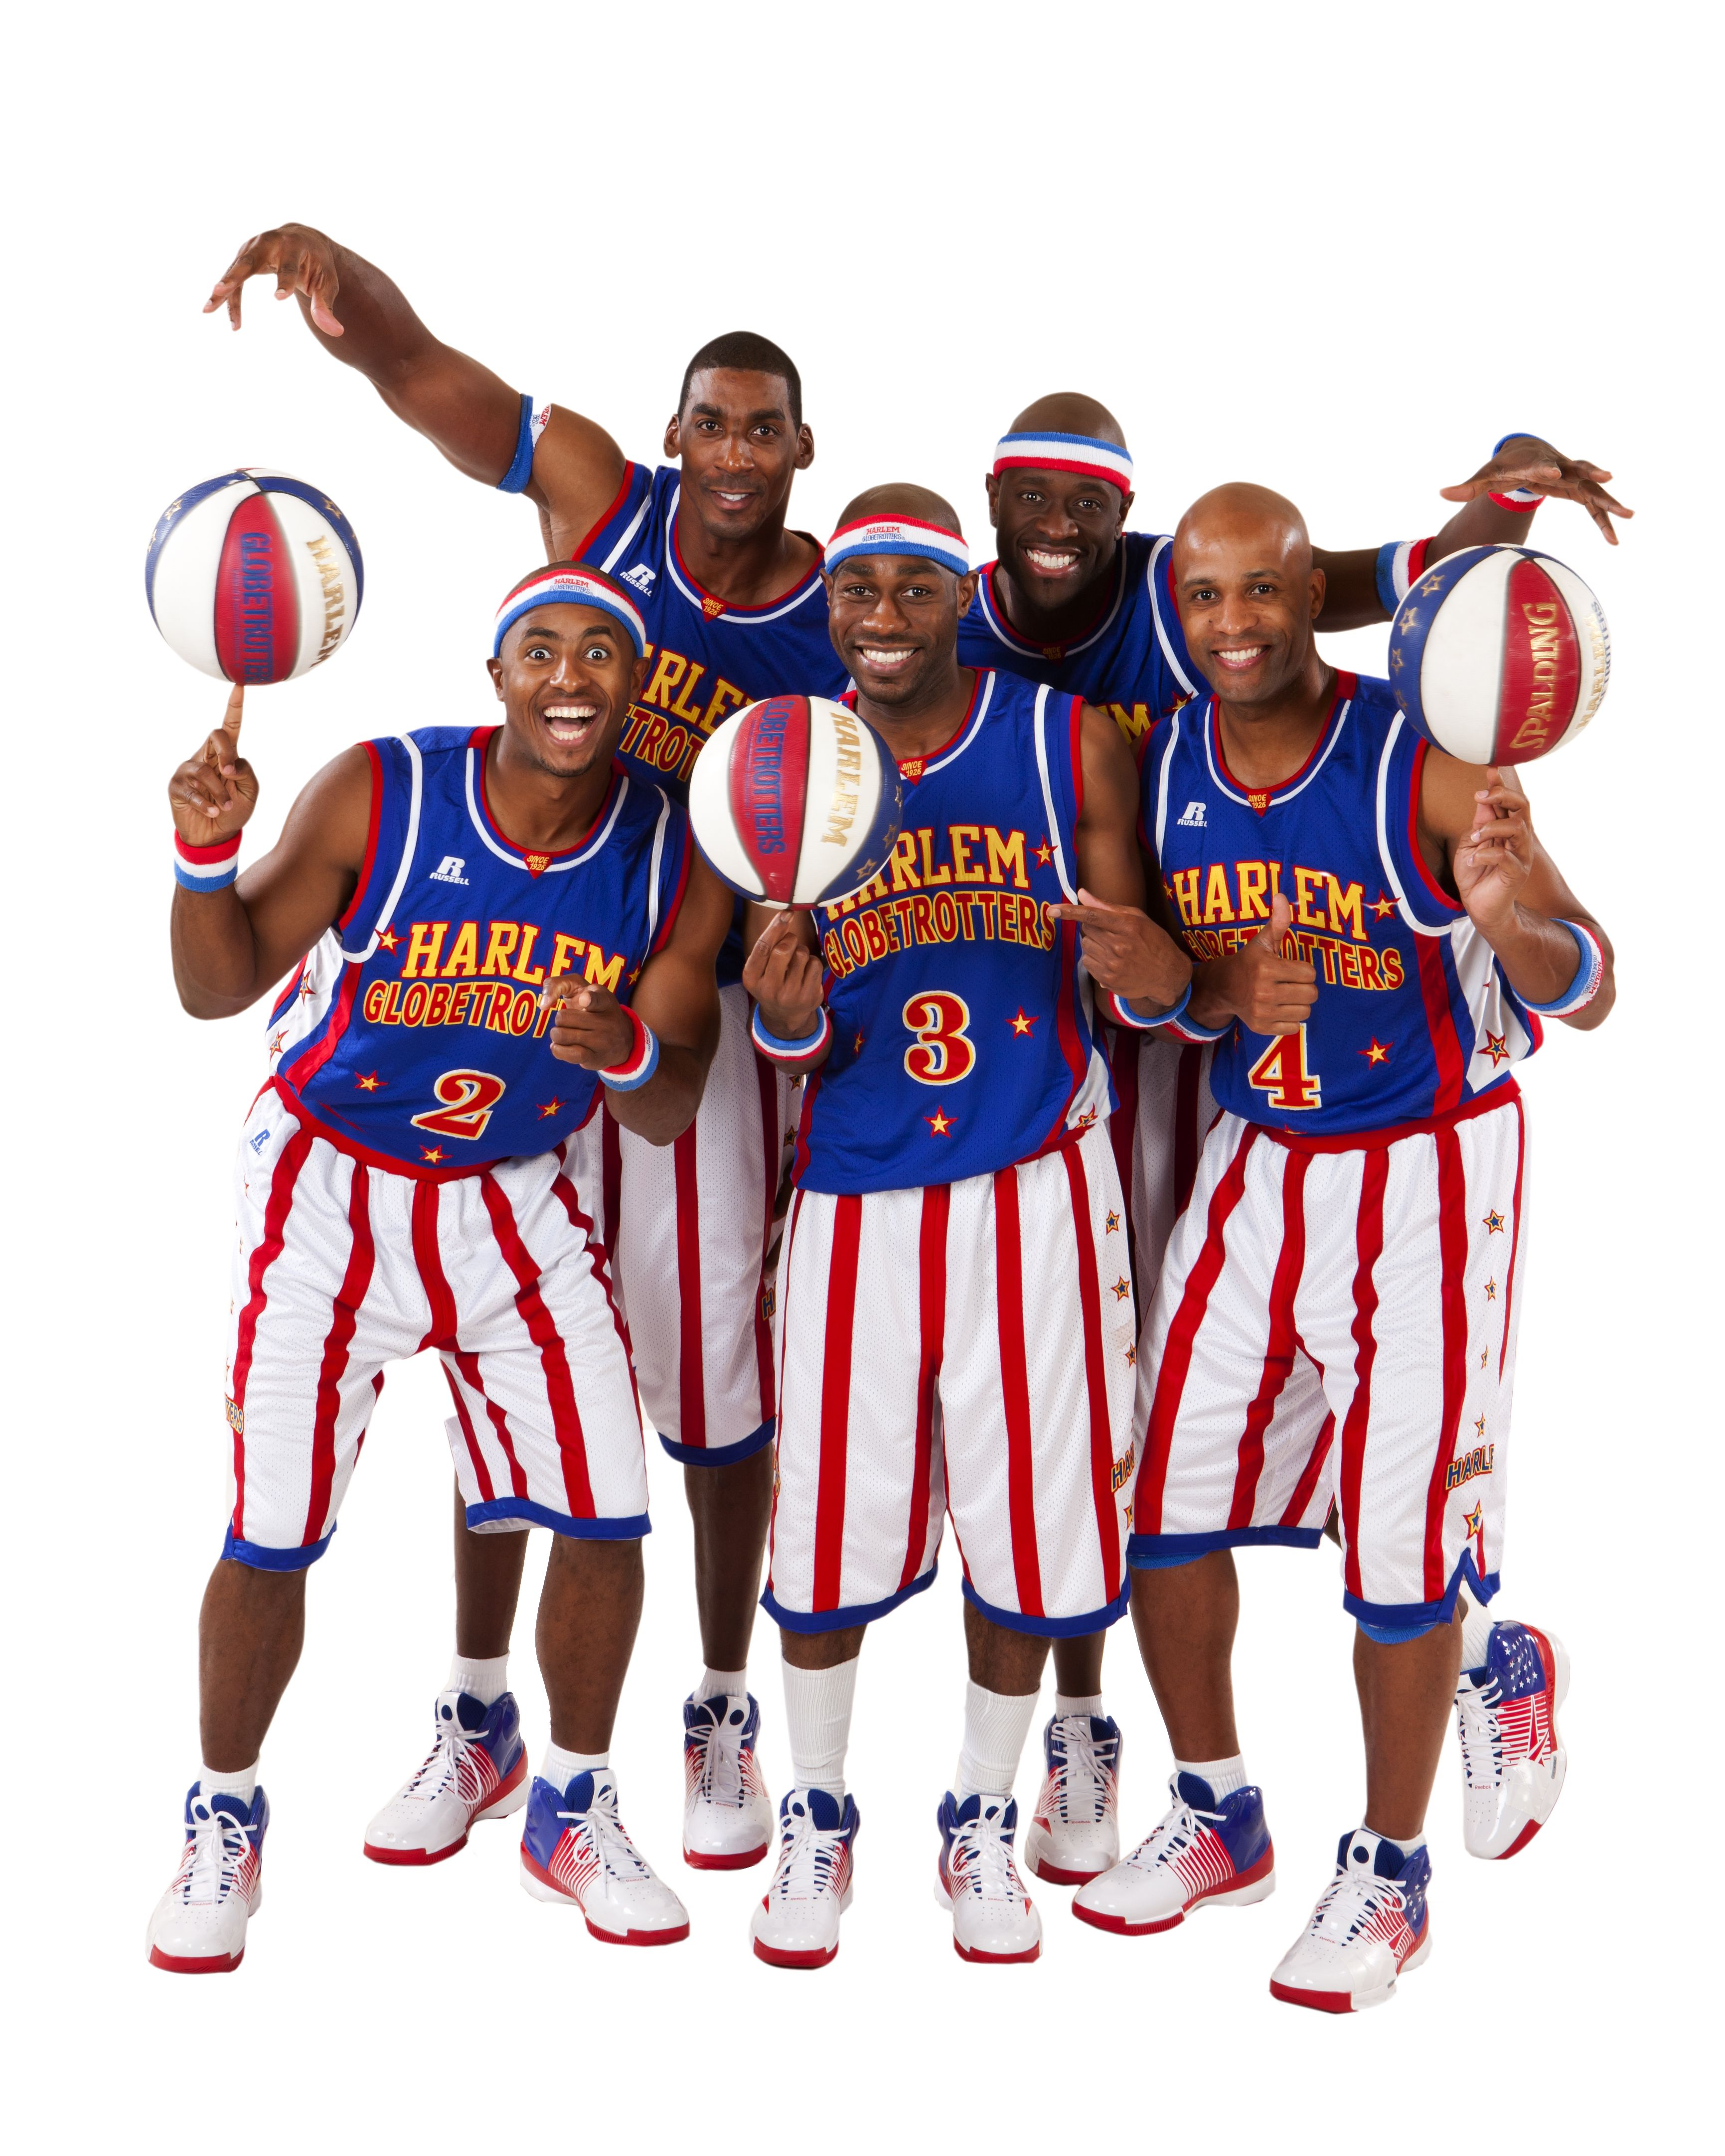 0659eb1d12d1 Where were the original Harlem Globetrotters players from  Repin and post a  comment of your answer.